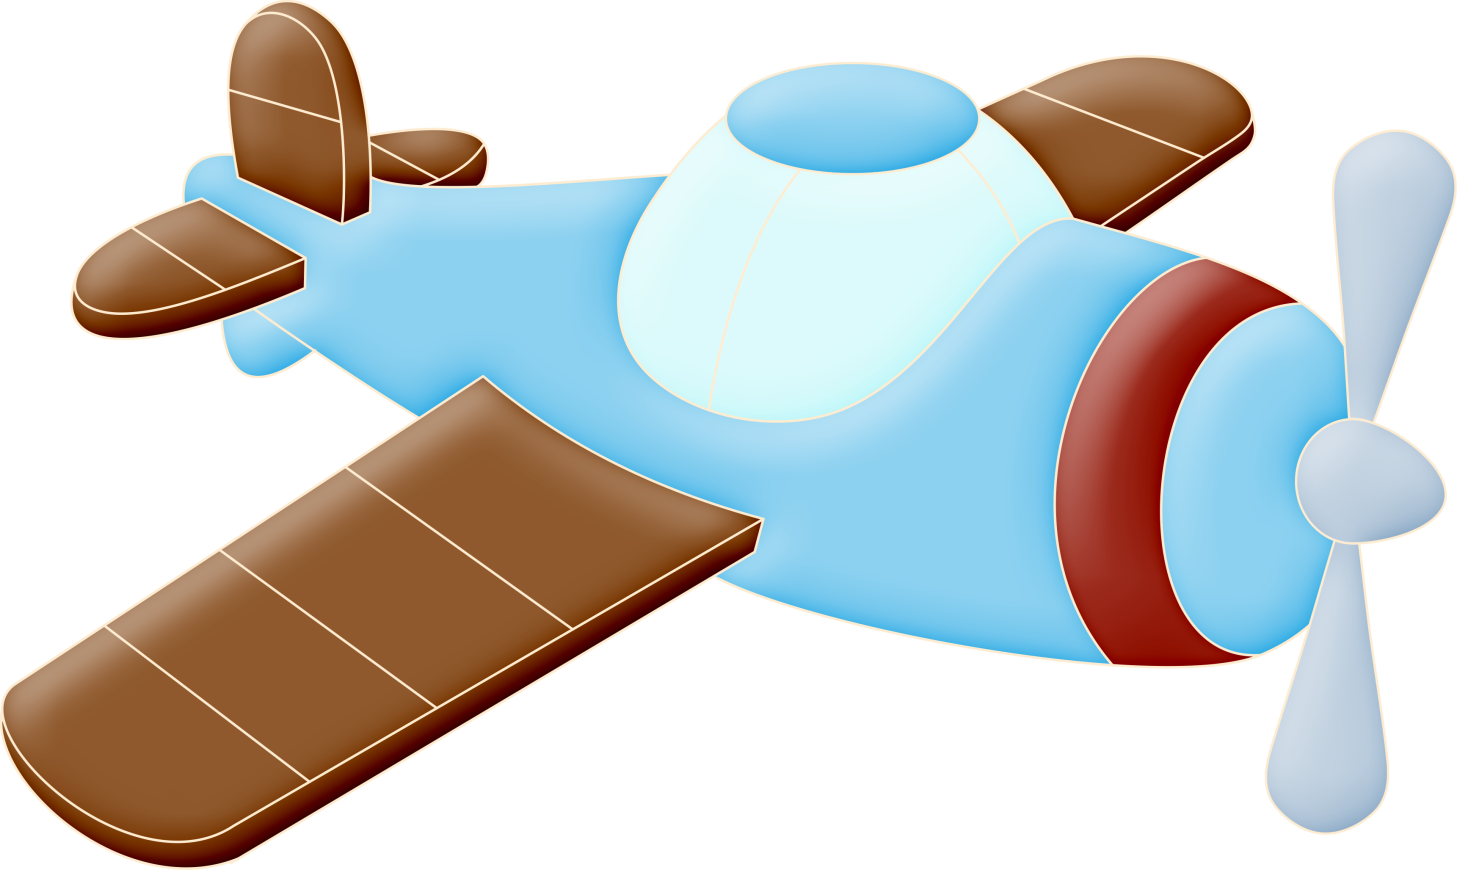 1457x870 Toy Plane Cartoon Png Clipart